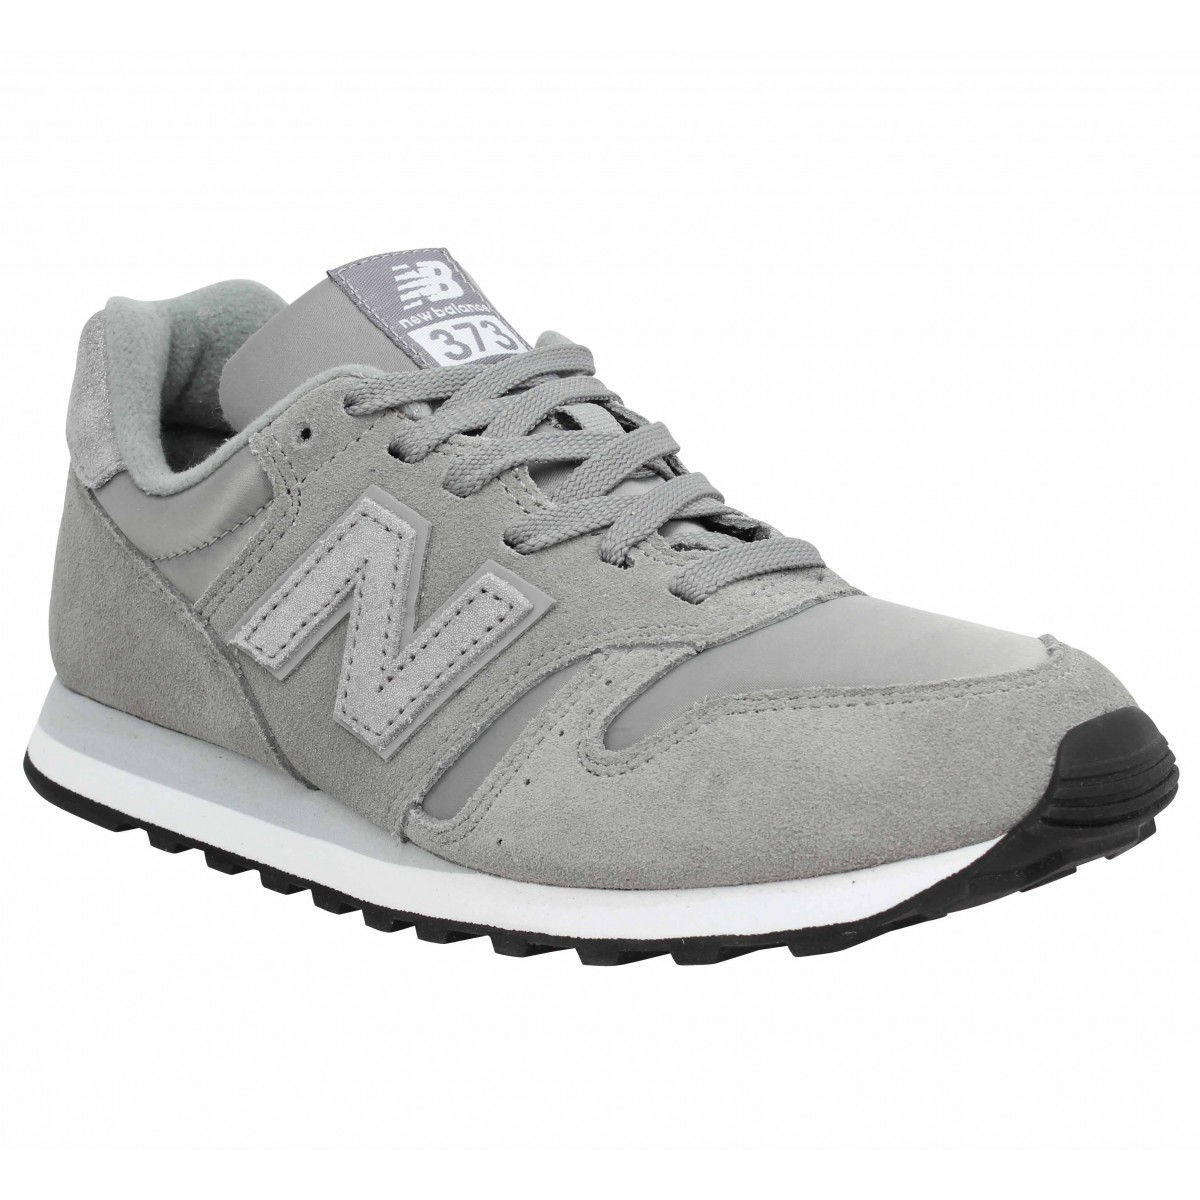 Baskets NEW BALANCE 373 velours Femme Gris